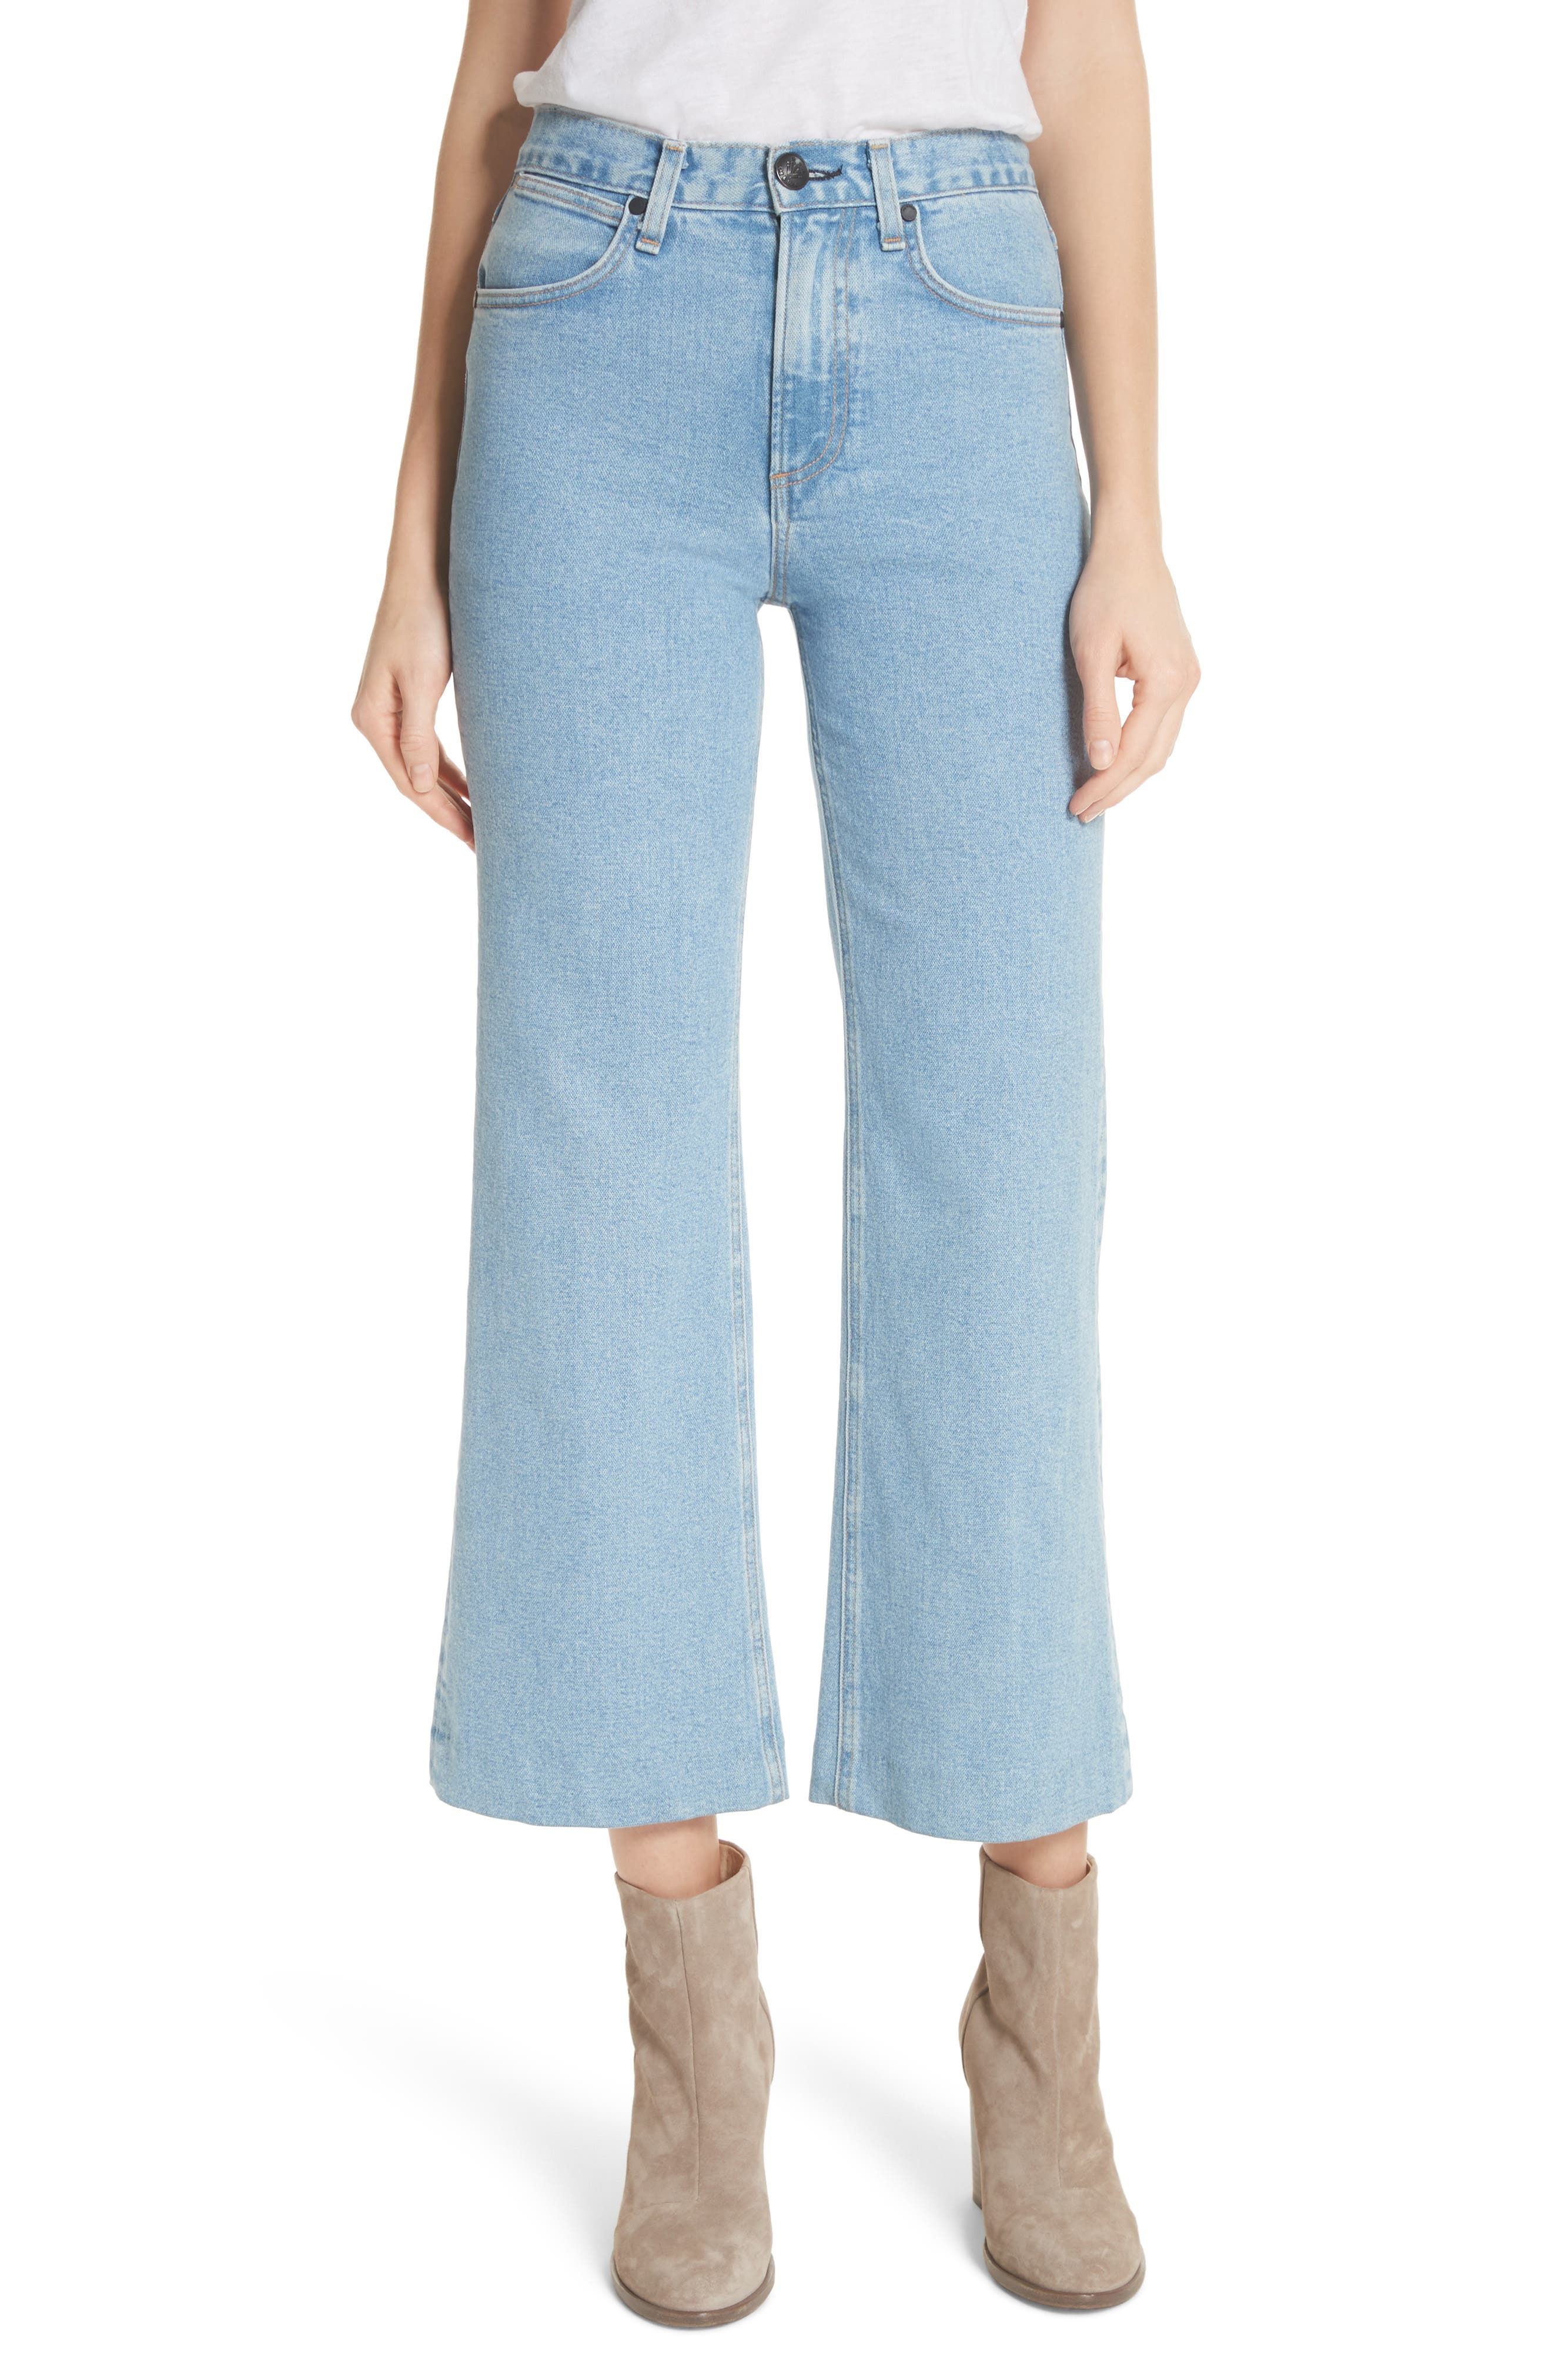 Justine High Waist Wide Leg Trouser Jeans,                             Main thumbnail 1, color,                             Broken Nelly